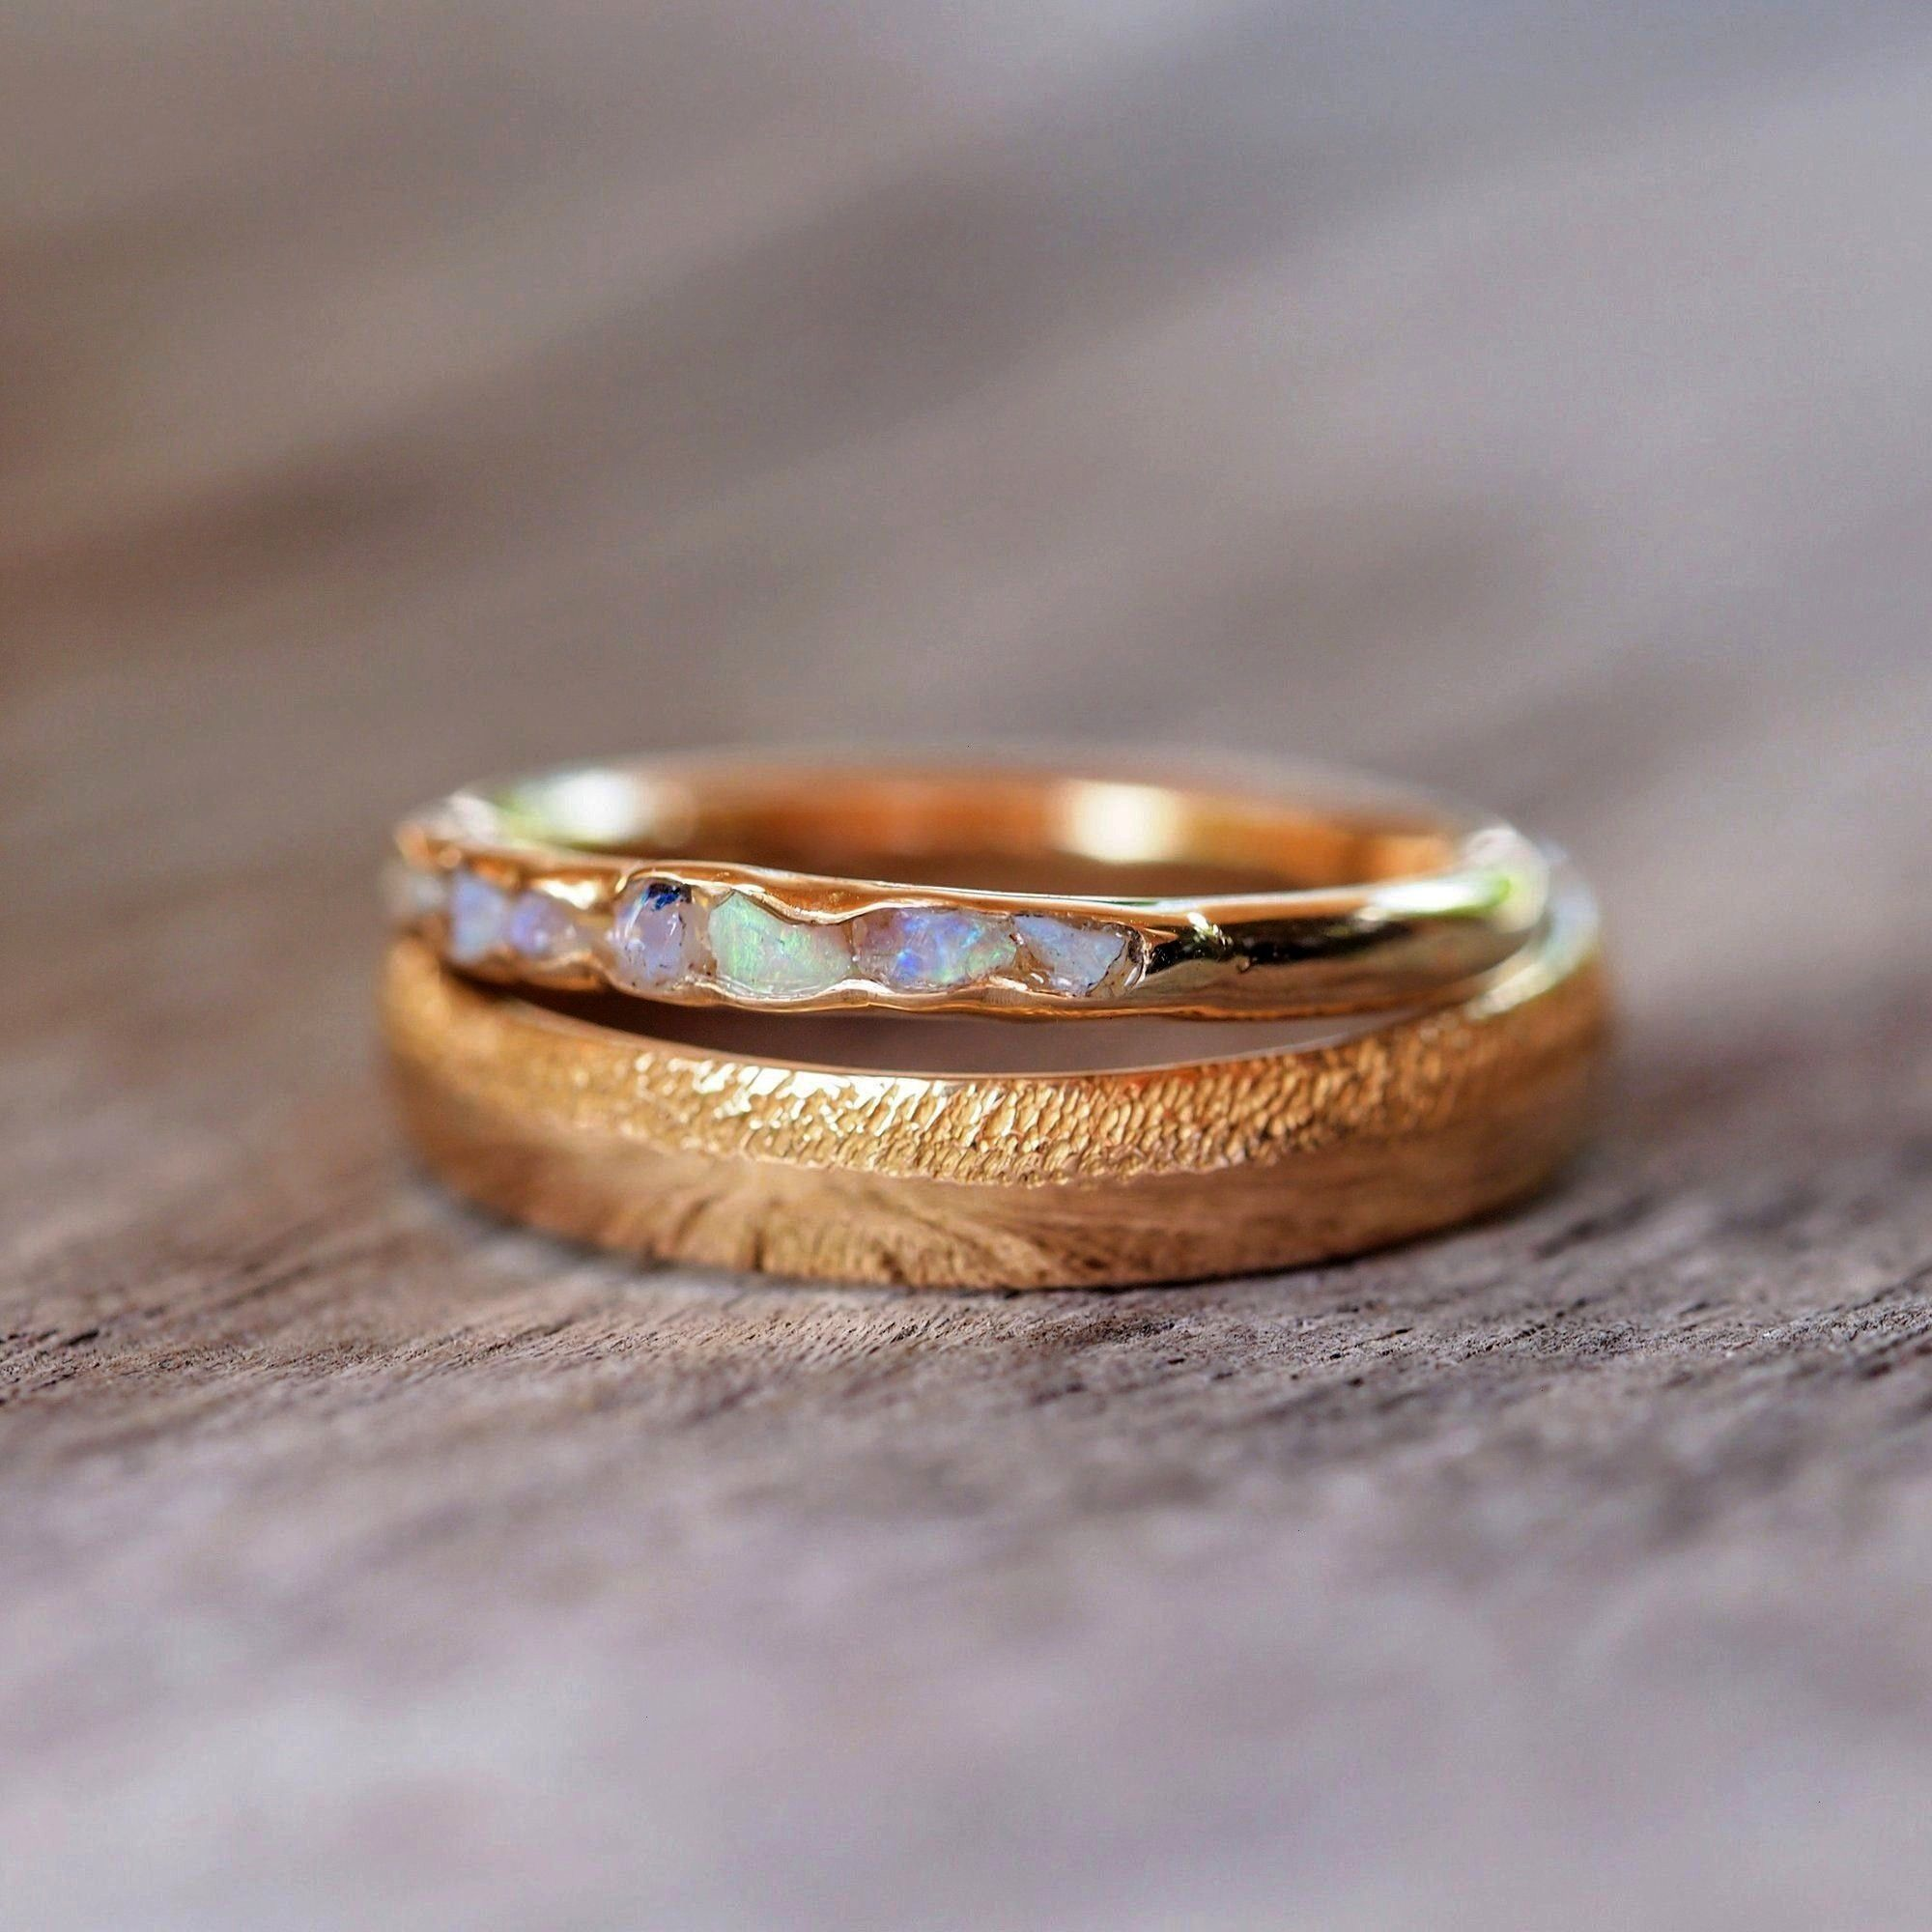 ring in eco gold  Made to order  Hidden gemstone ring in gold Made to order  Etsy Hidden gemstone ring in eco gold  Made to order  Hidden gemstone ring in gold Made to or...